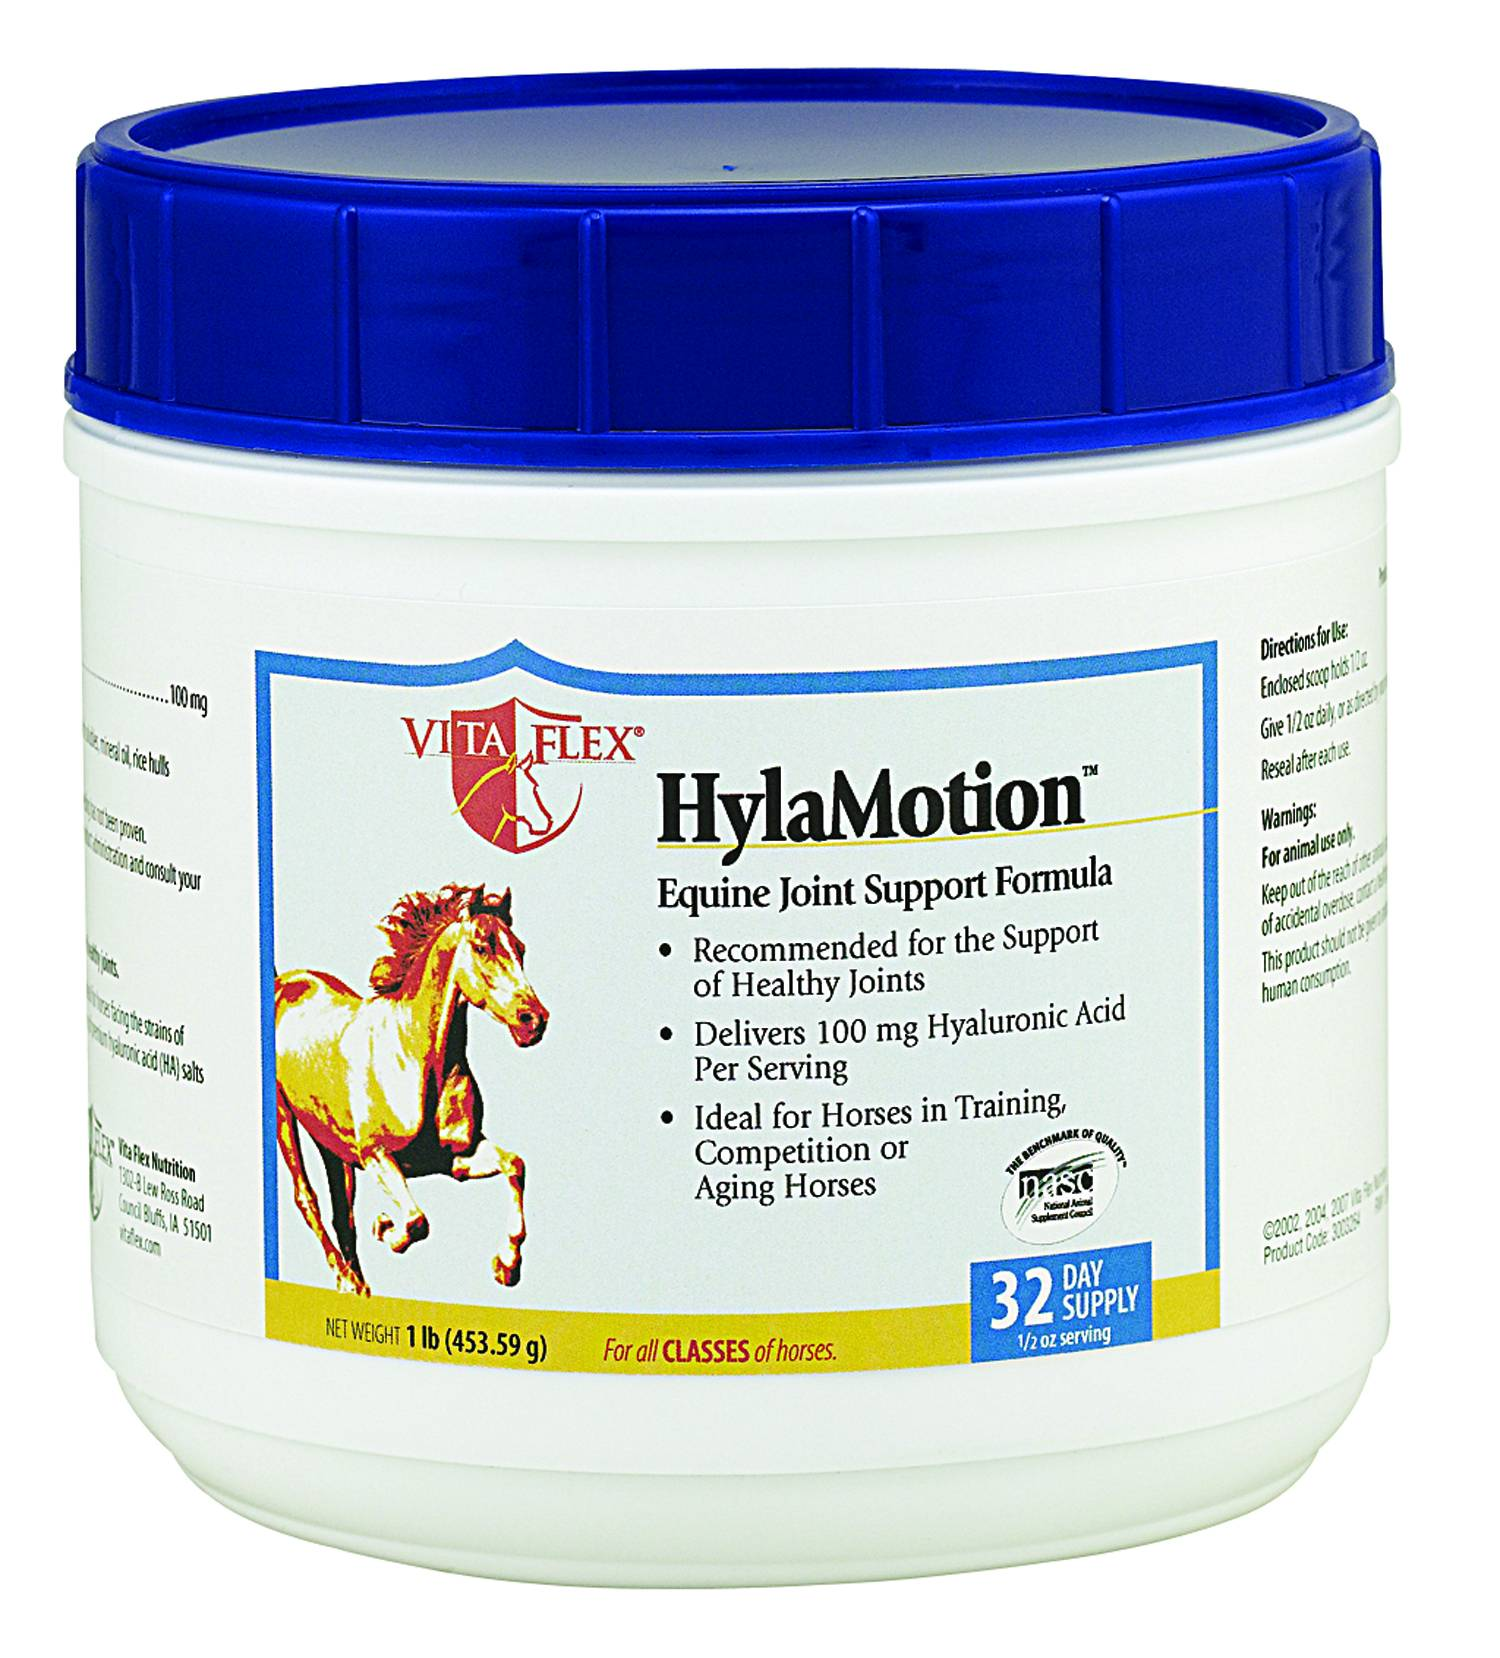 Vita Flex HyLamotion Horse Supplement